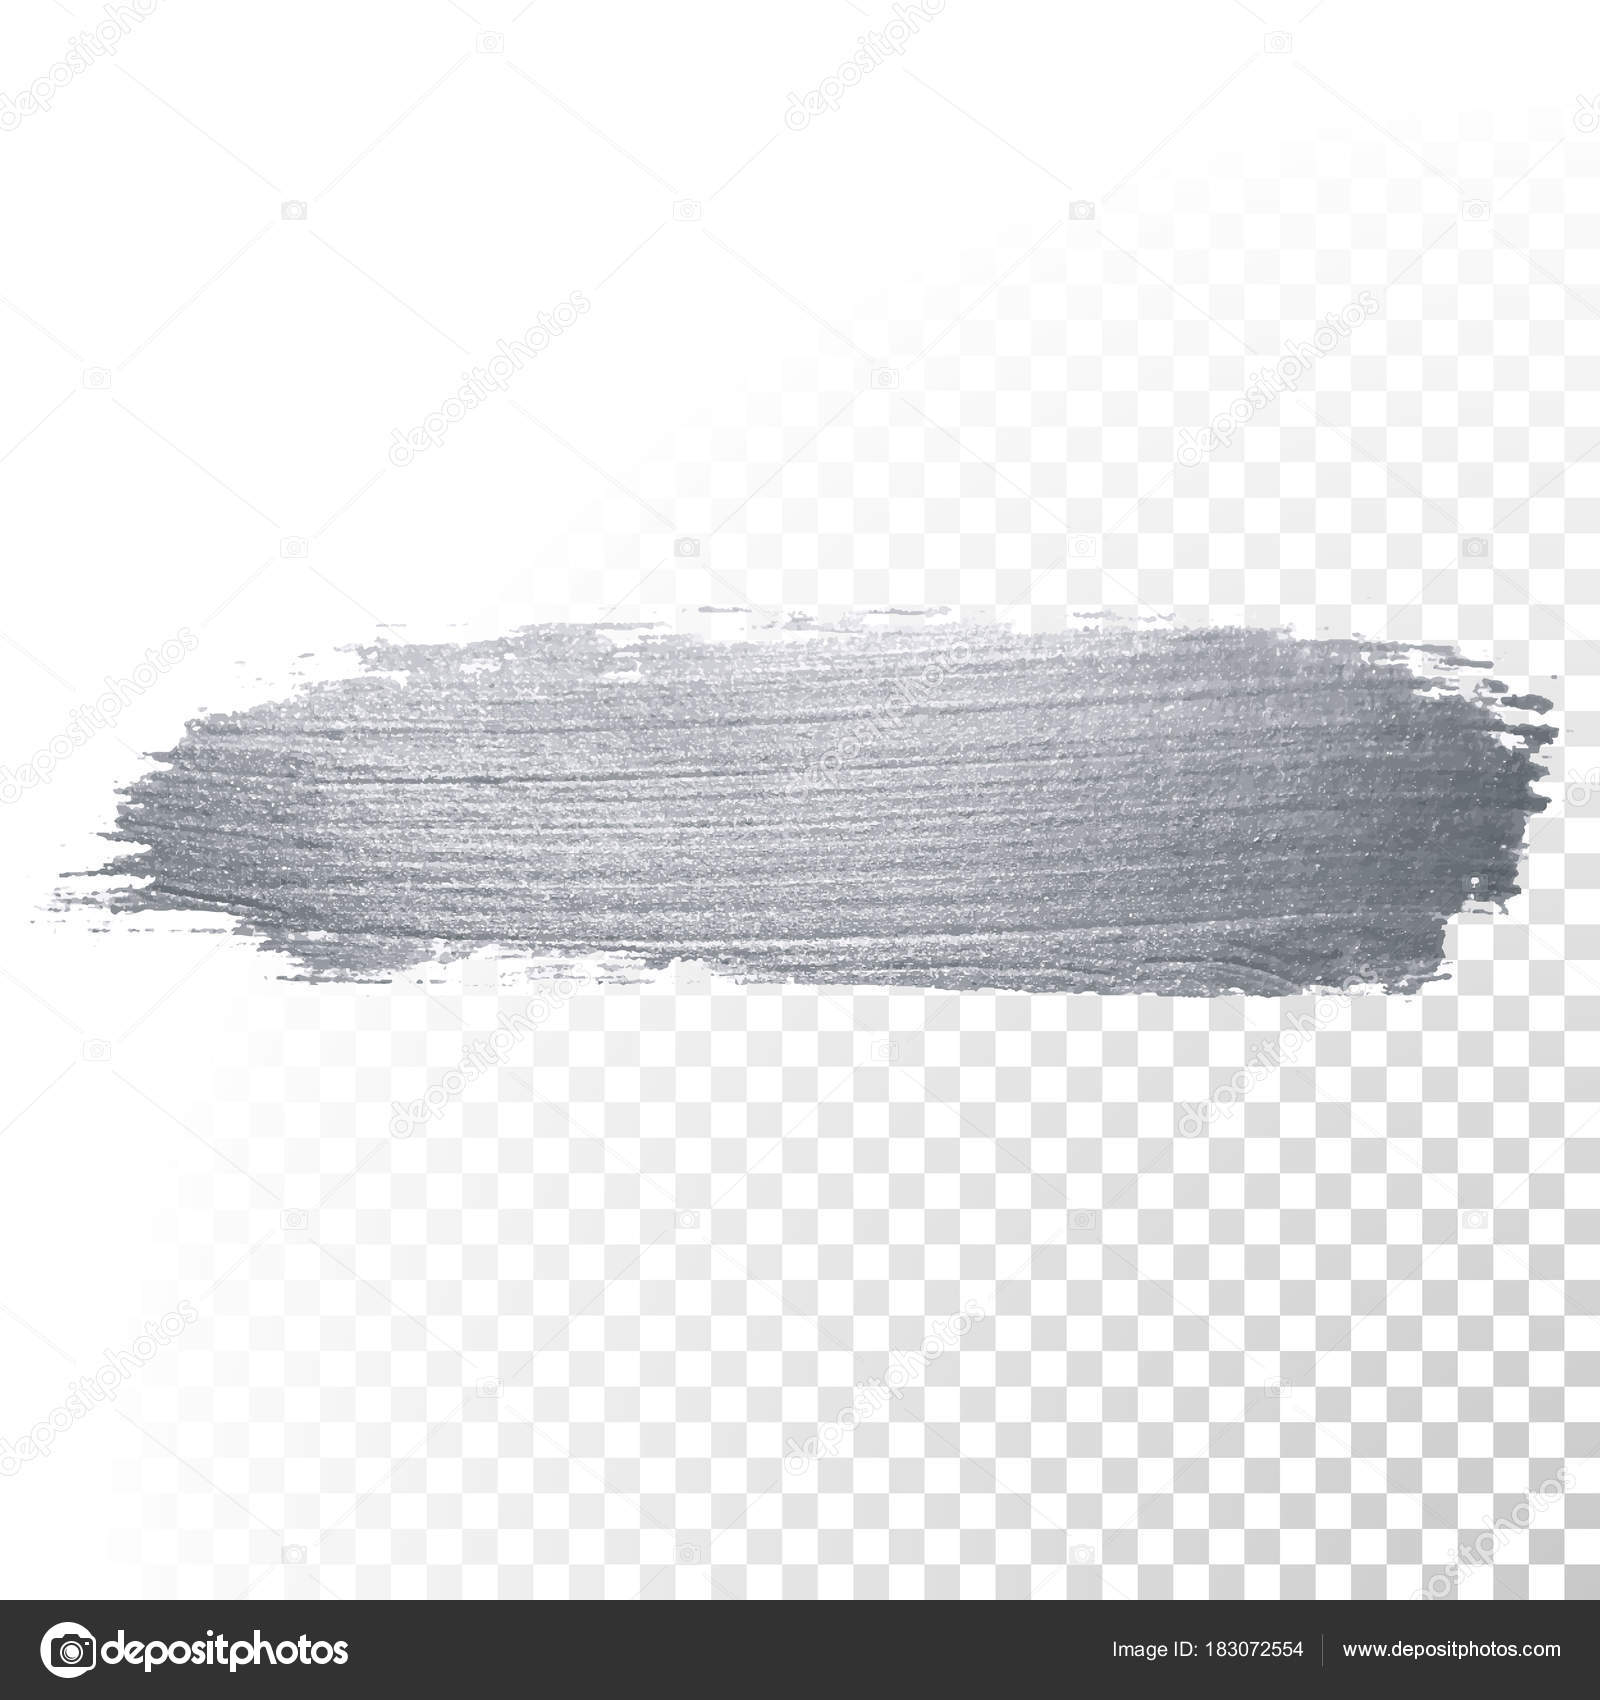 Silver Glitter Paint Brush Stroke Or Abstract Dab Smear With Smudge Texture On Transparent Background Vector Isolated Glittering And Sparkling